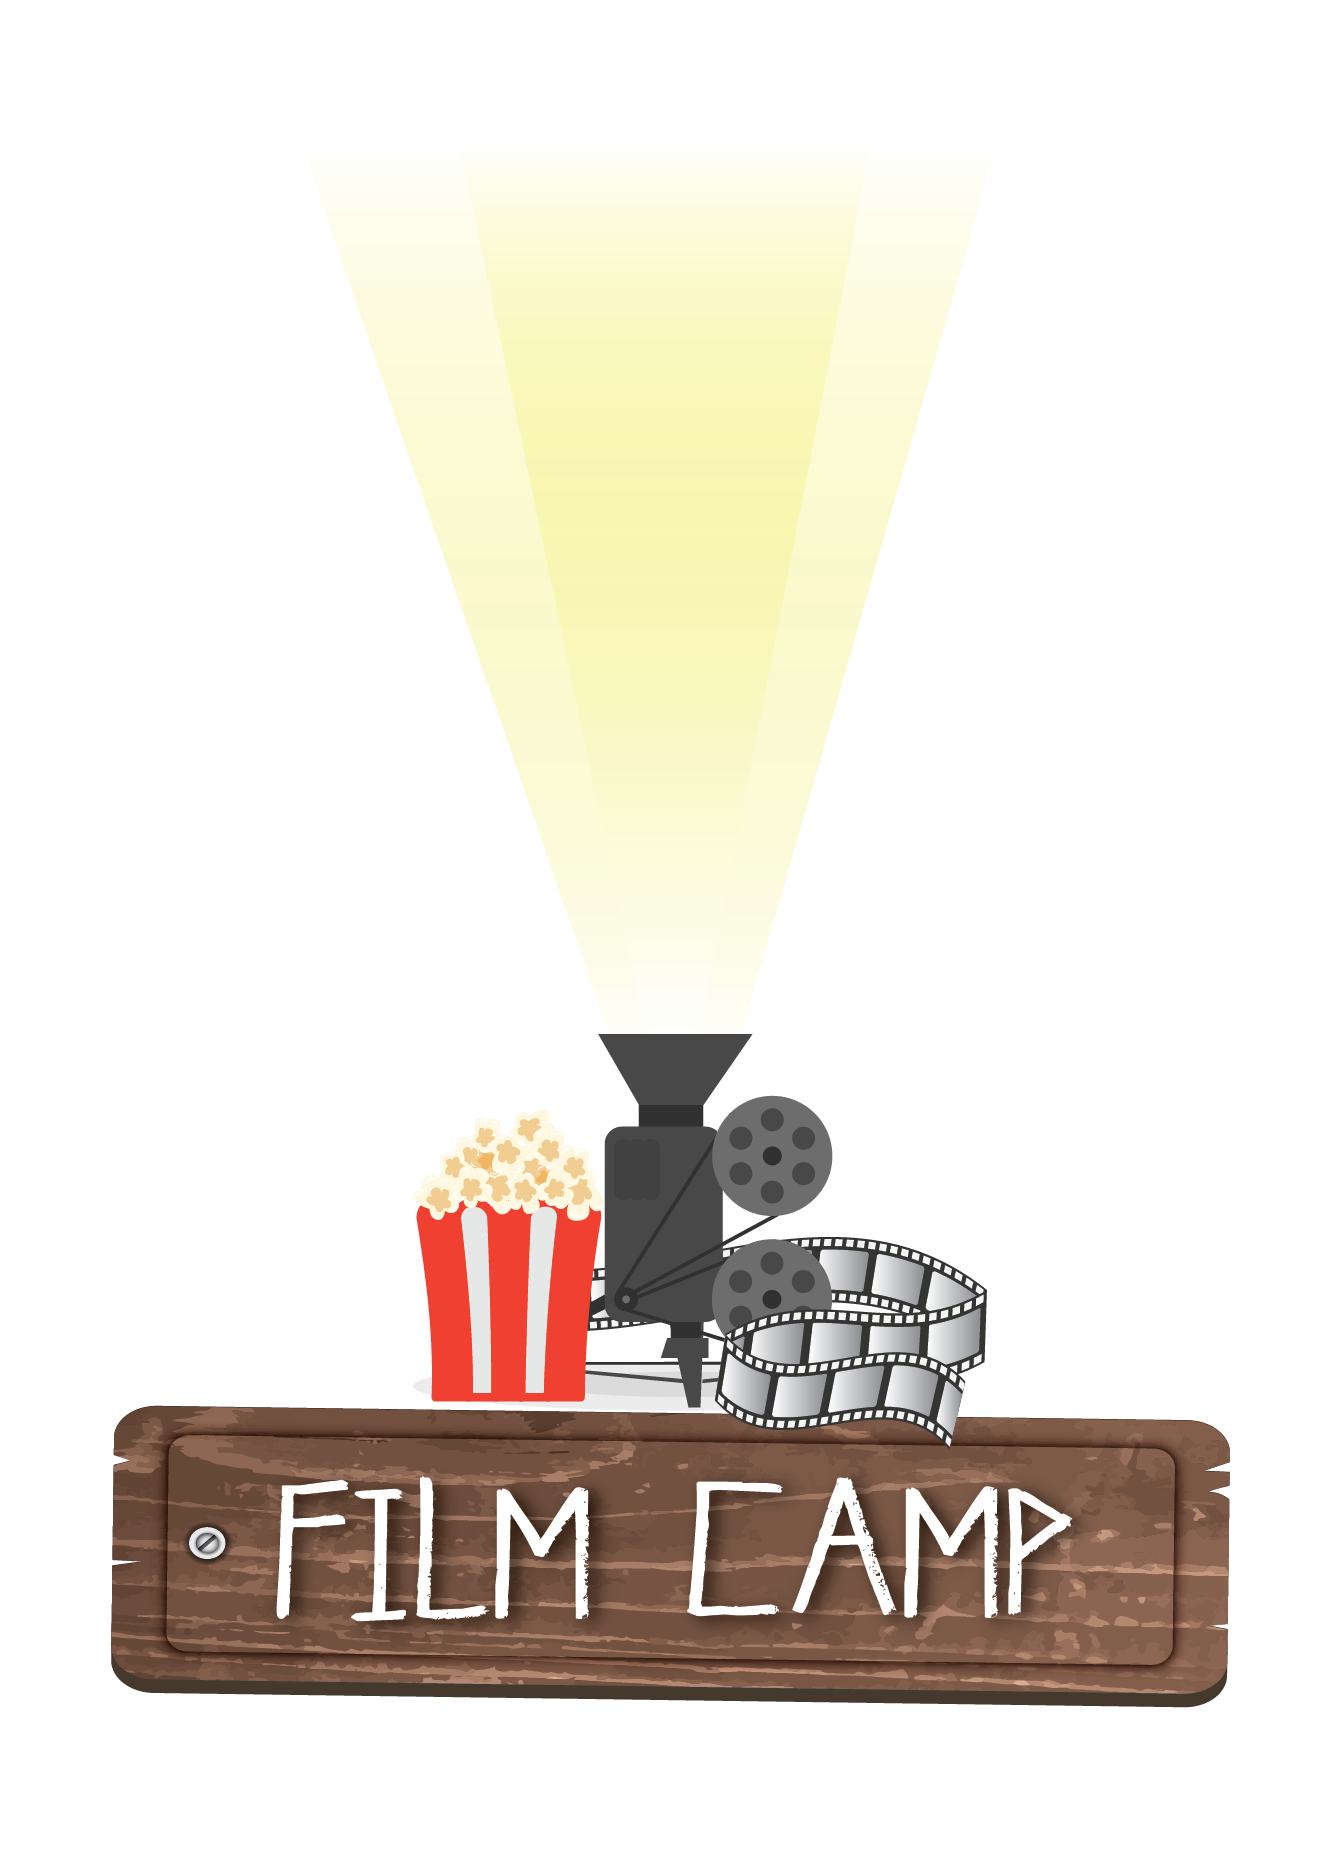 Hilbert Summer film Camp logo